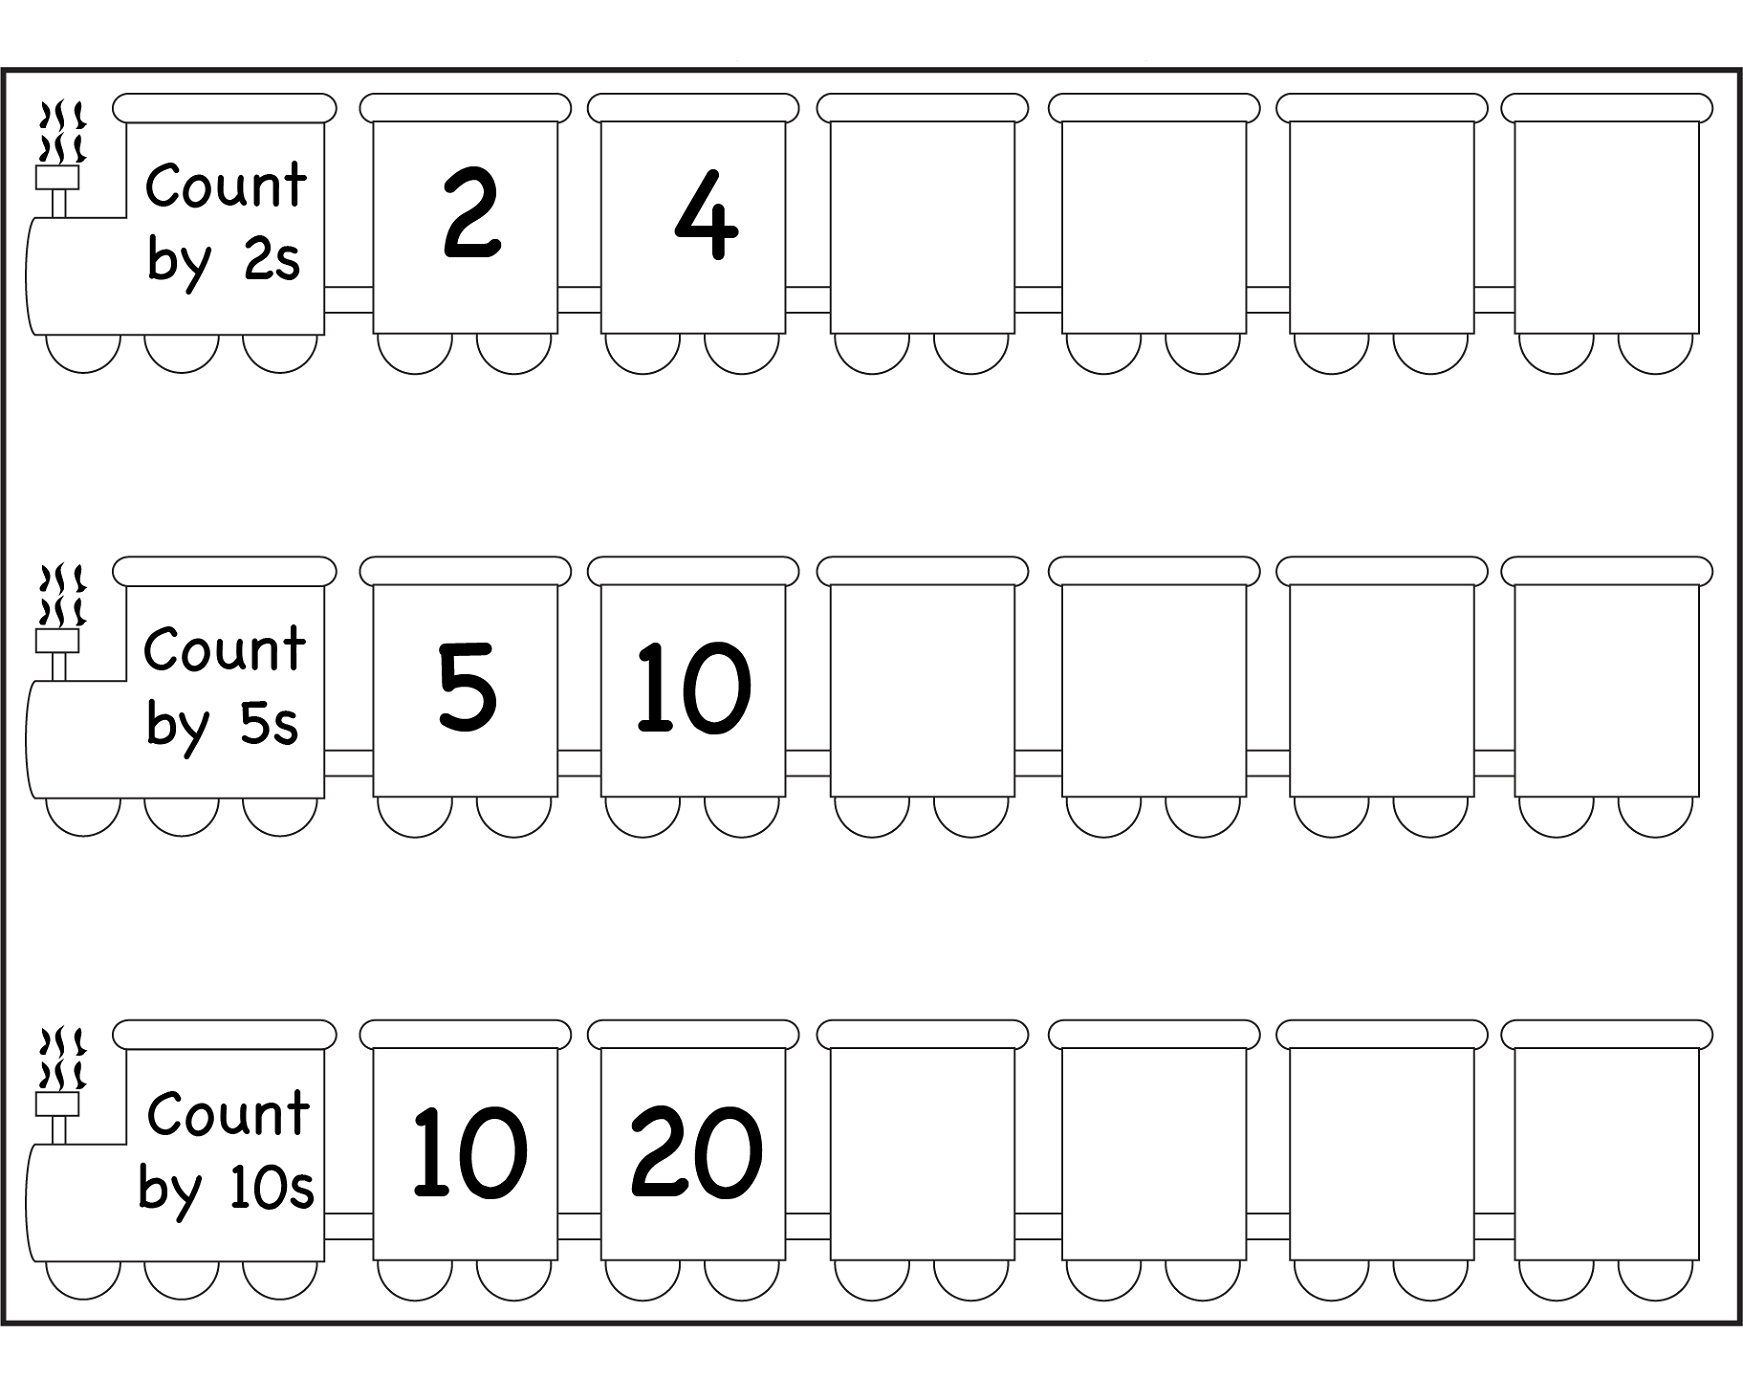 count by 2s worksheet for kids